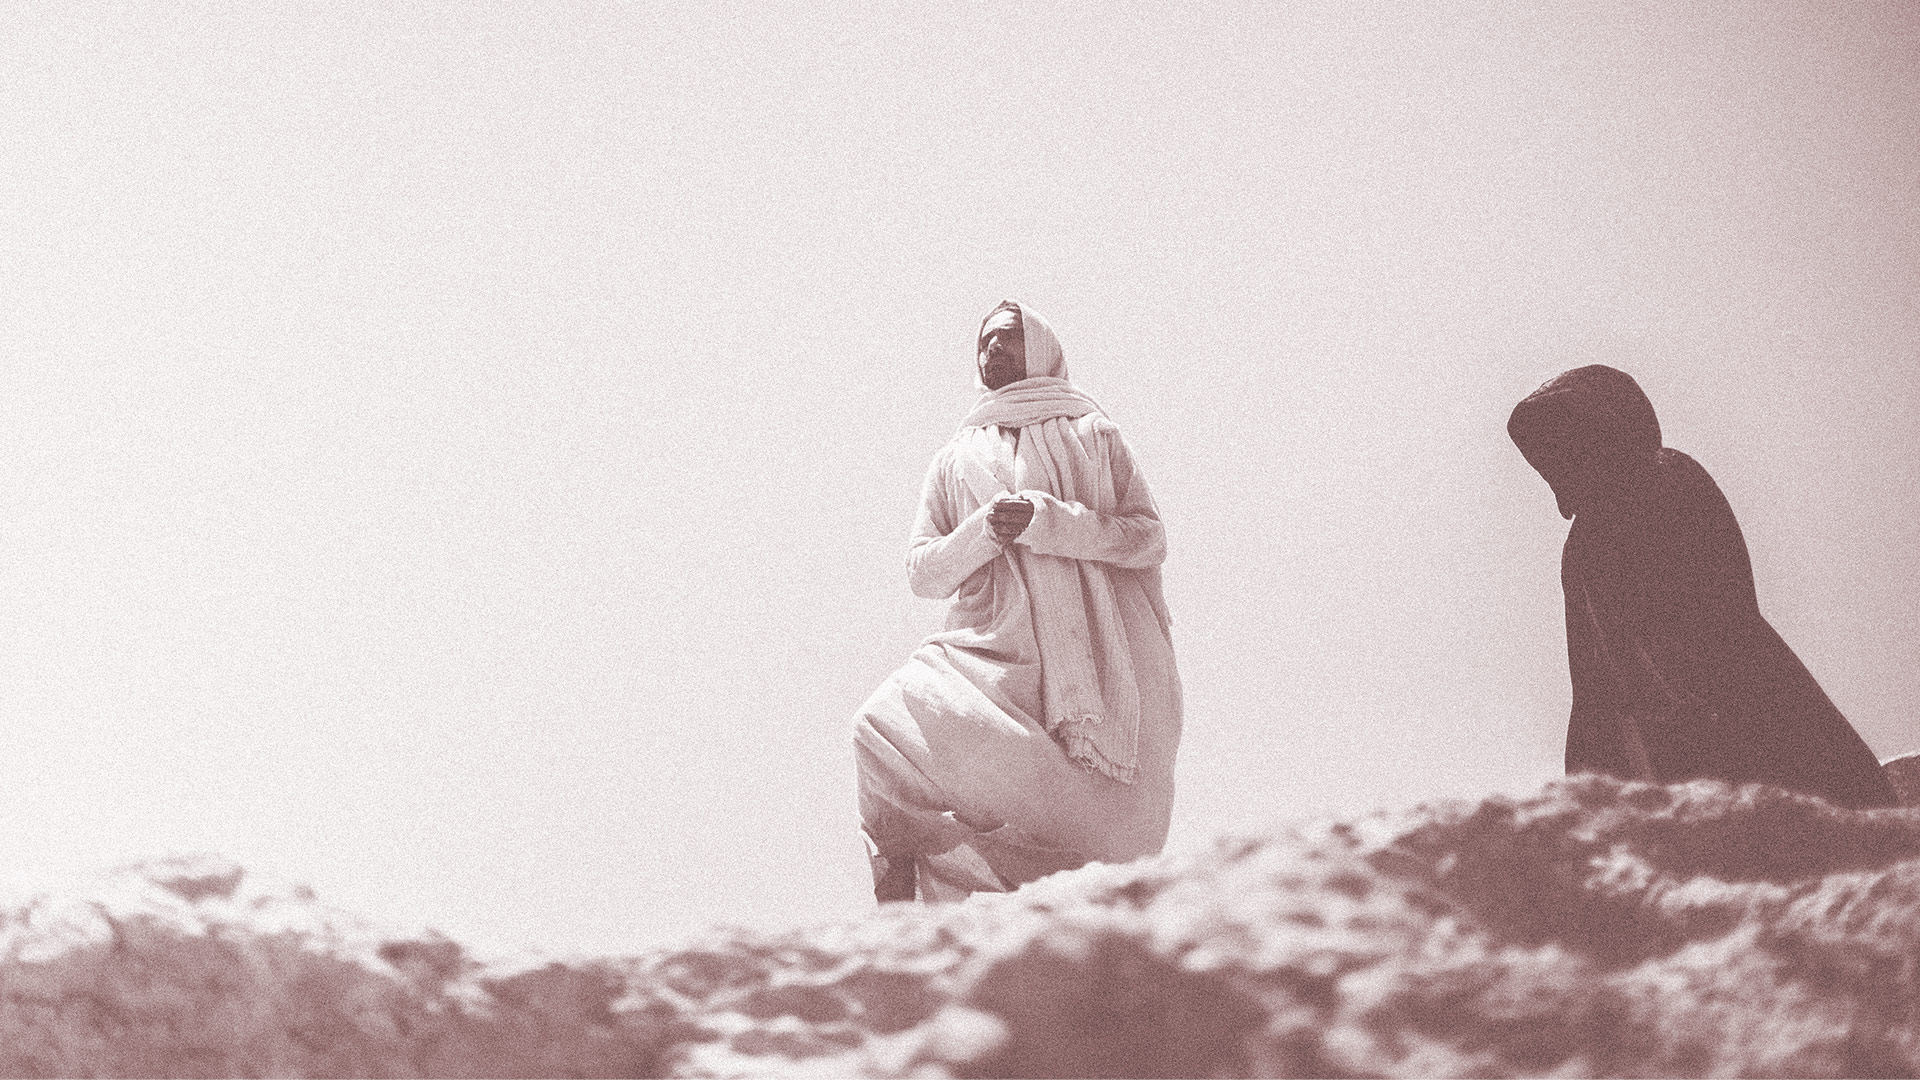 Jesus' Temptations: Reflecting on Your Struggle against Sin